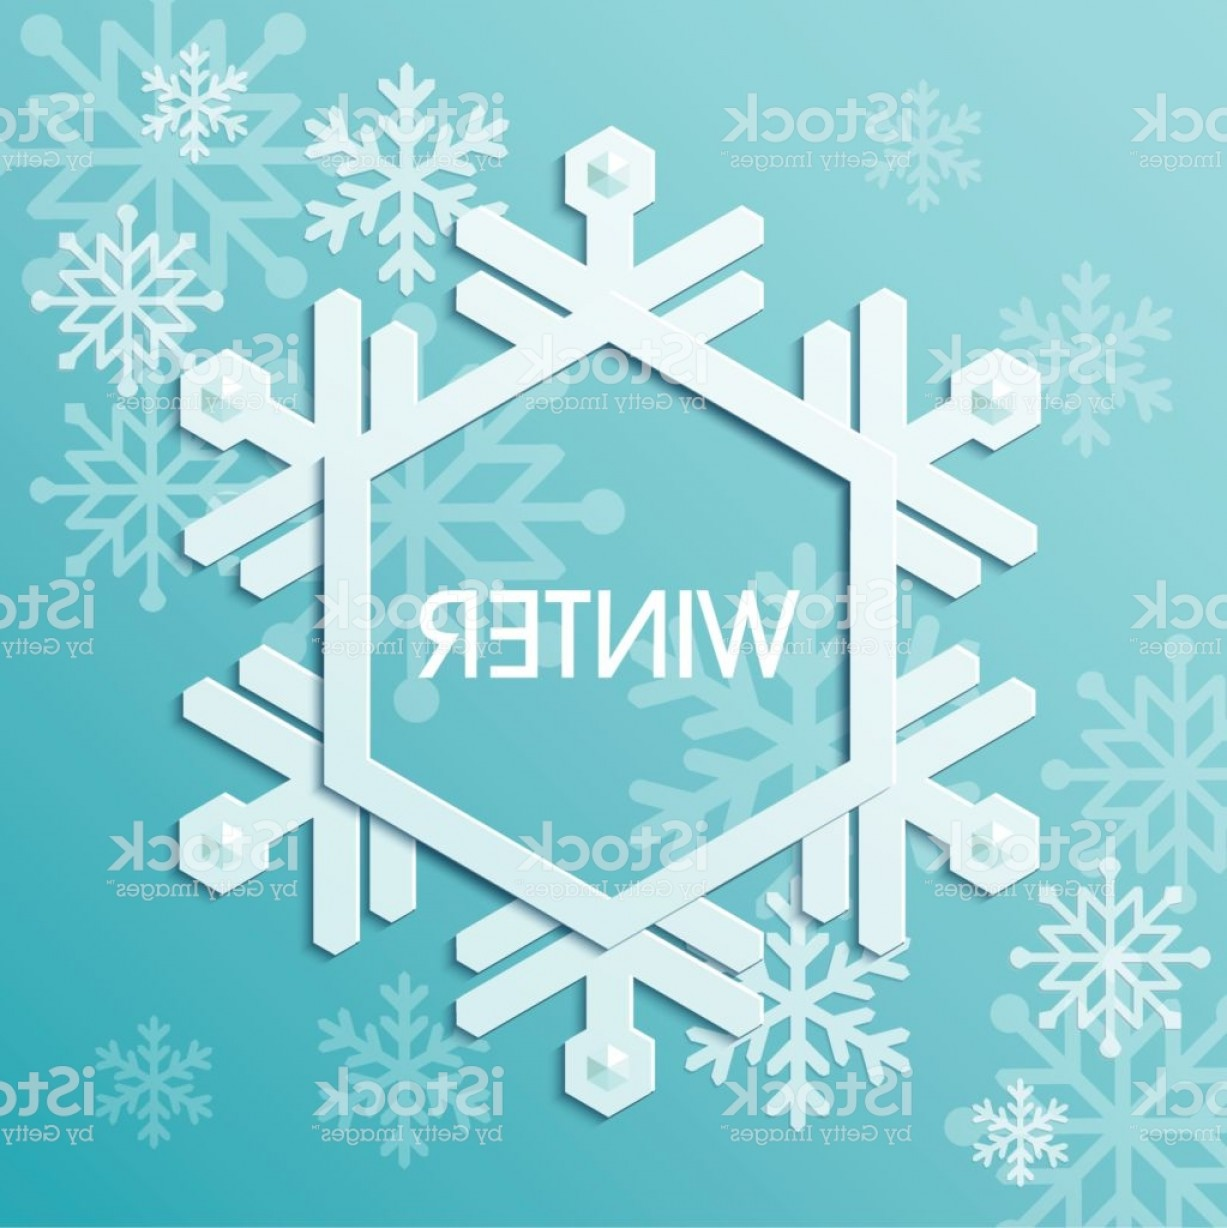 Snowflake Border Vector Art: Winter Snowflake Border Design Gm